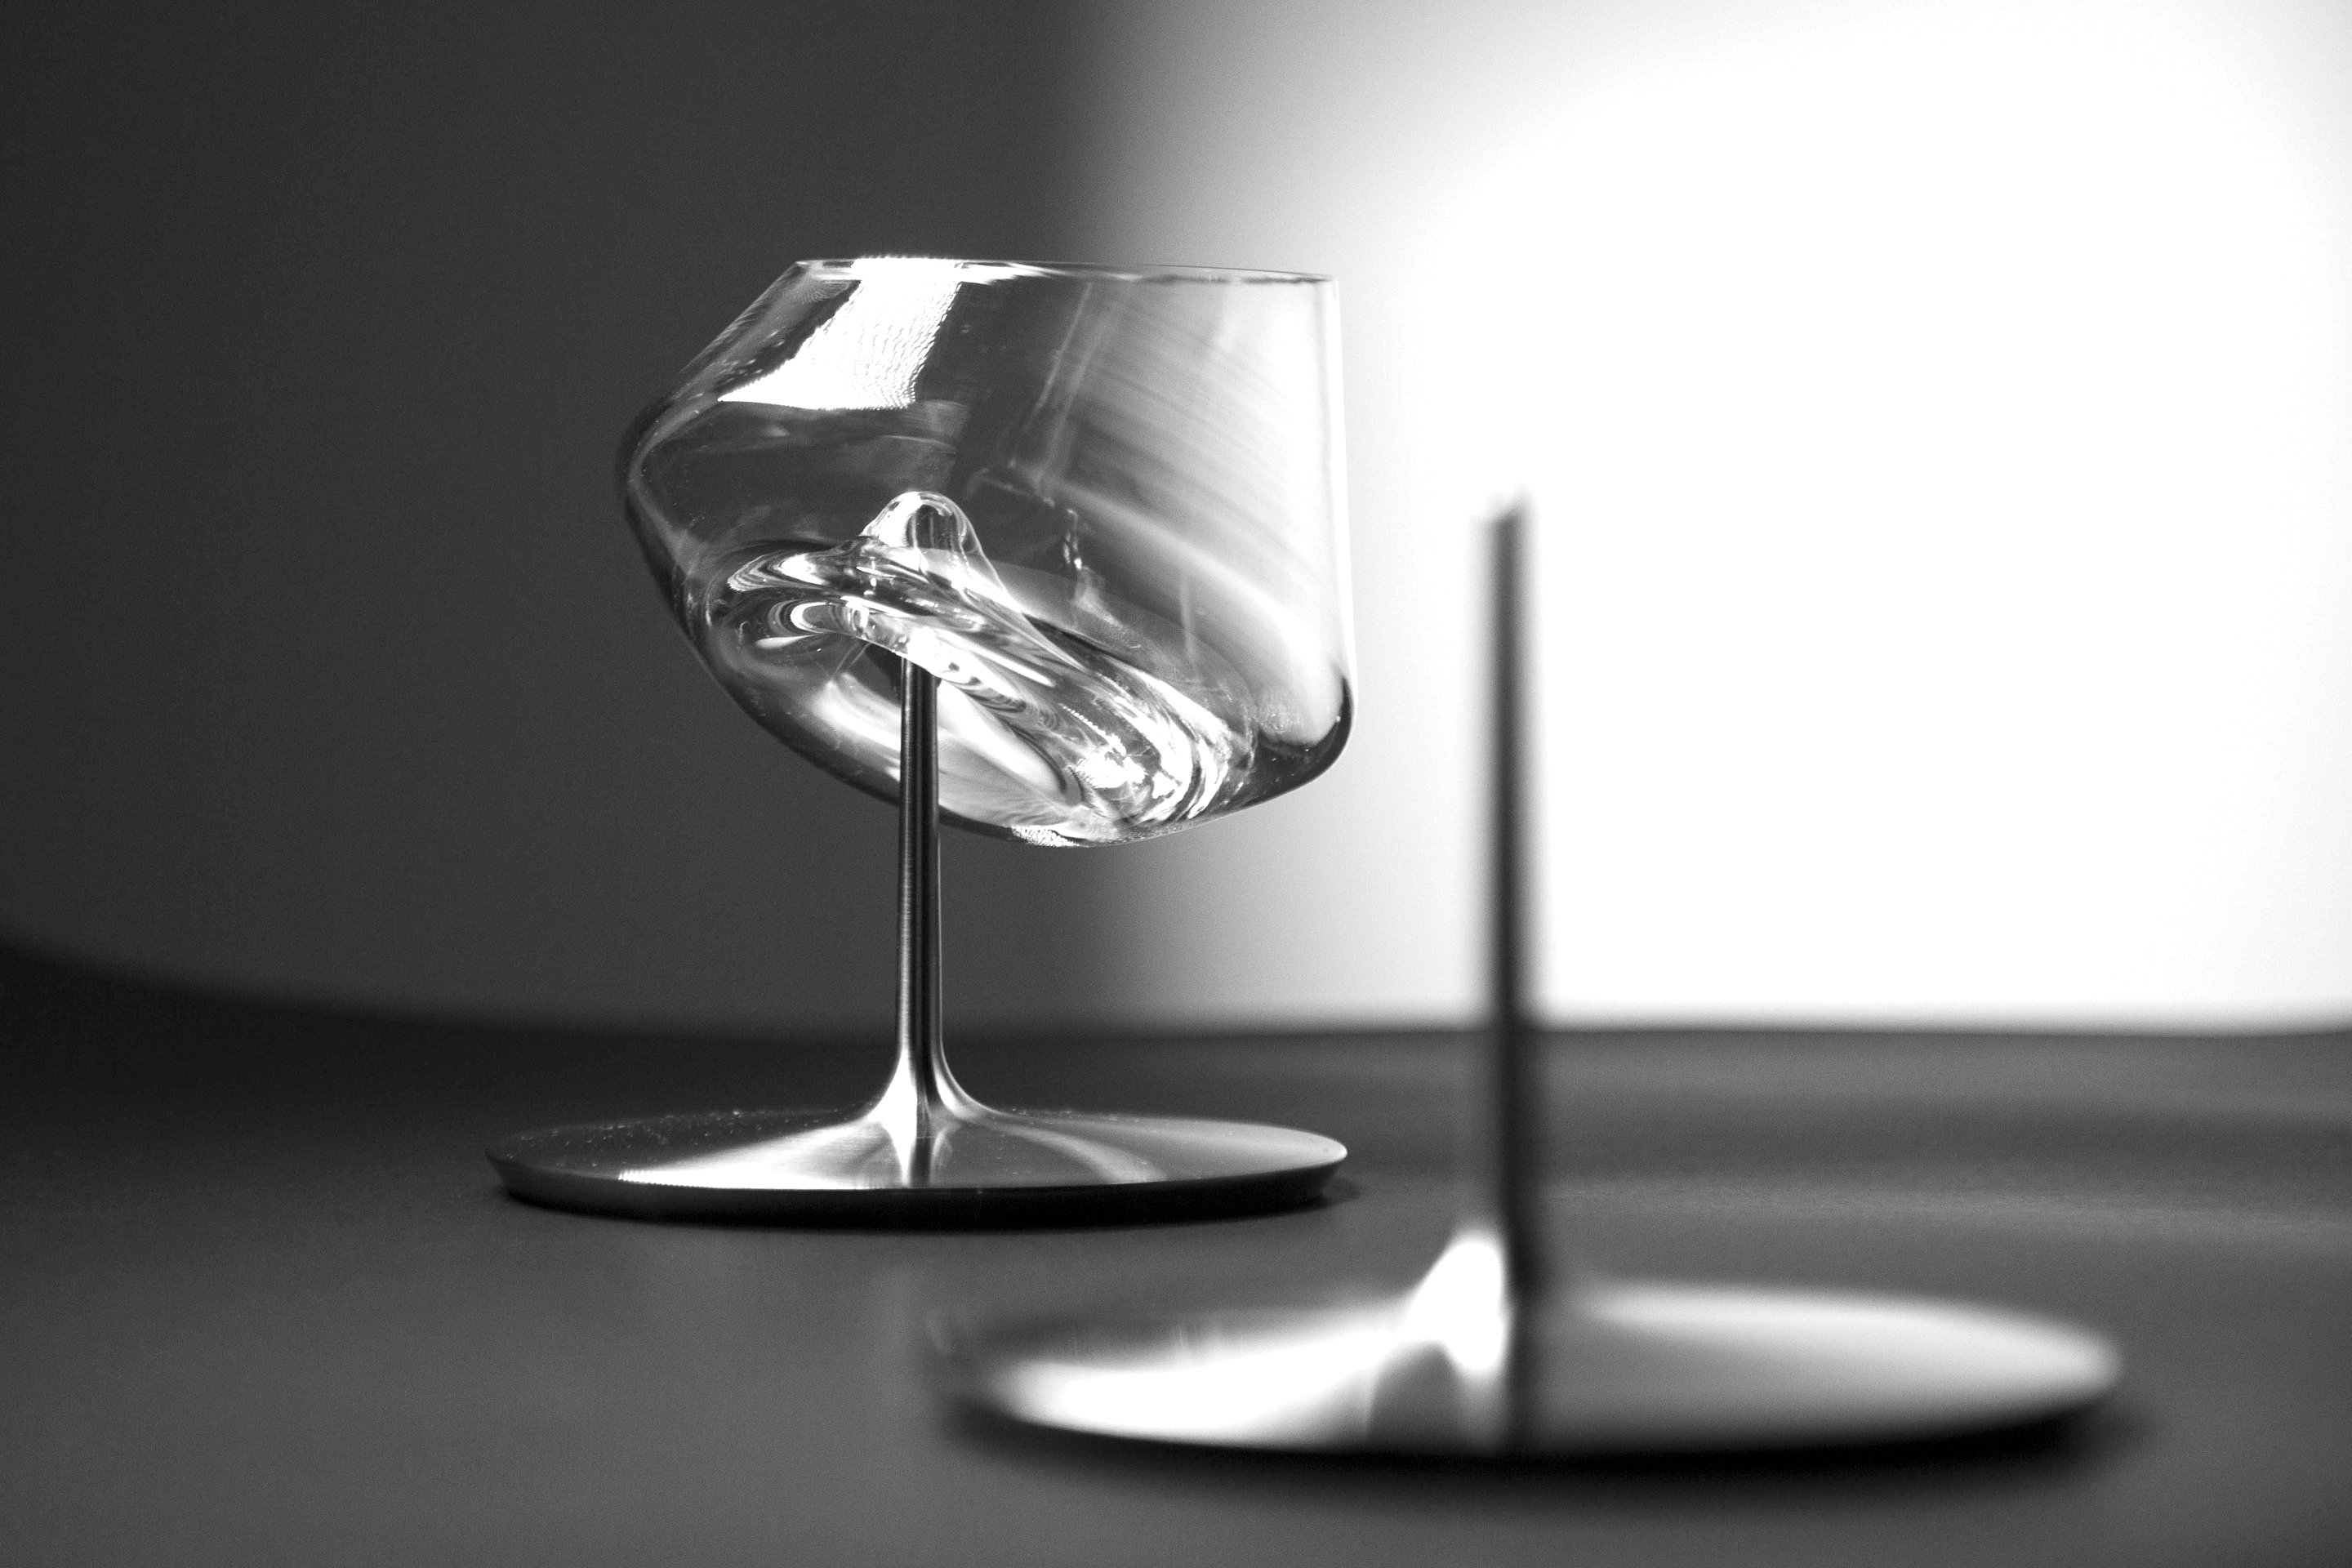 Untippable Martini Glass by Andres Boraita